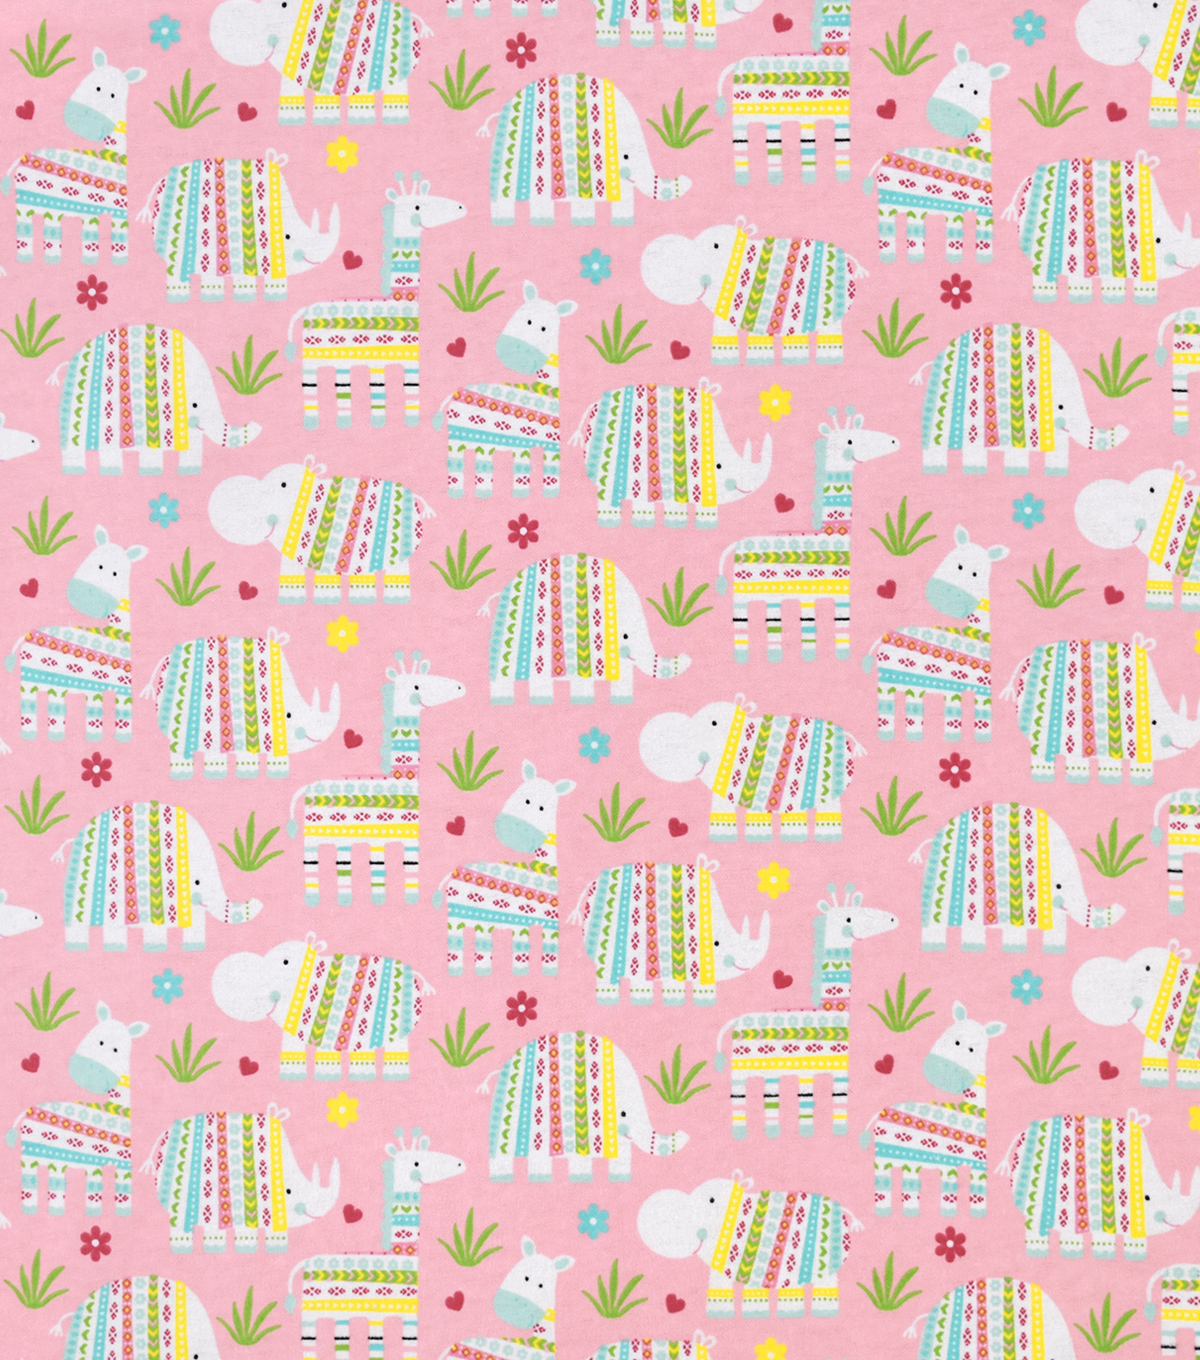 Snuggle Flannel Fabric-Baby Safari Animals on Pink